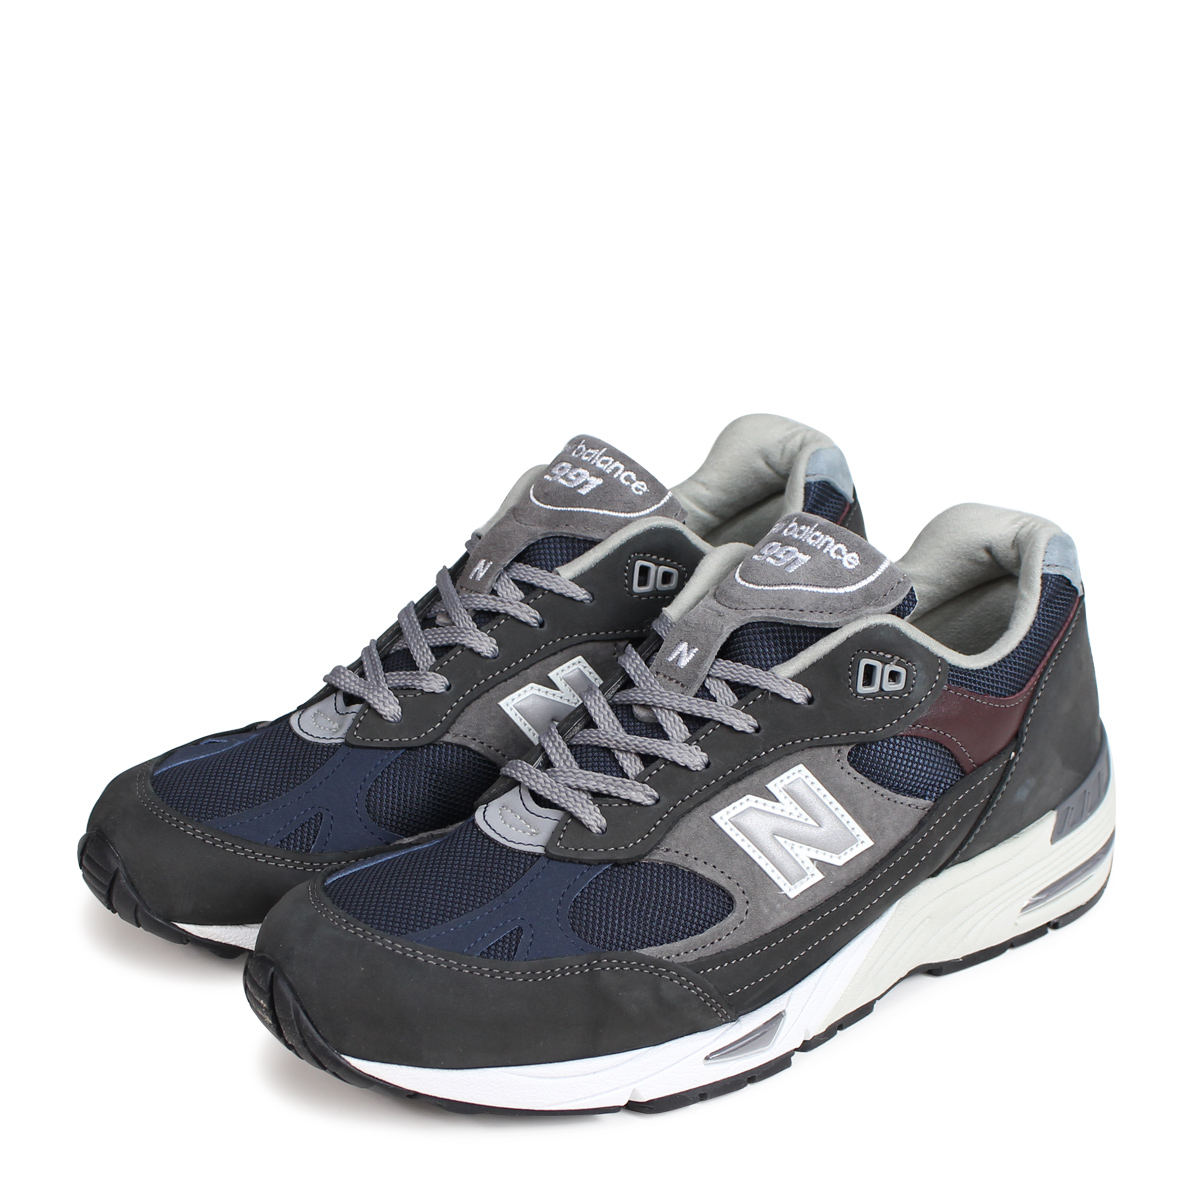 new balance M991GNN MADE IN UK New Balance 991 men's sneakers D Wise gray [193]